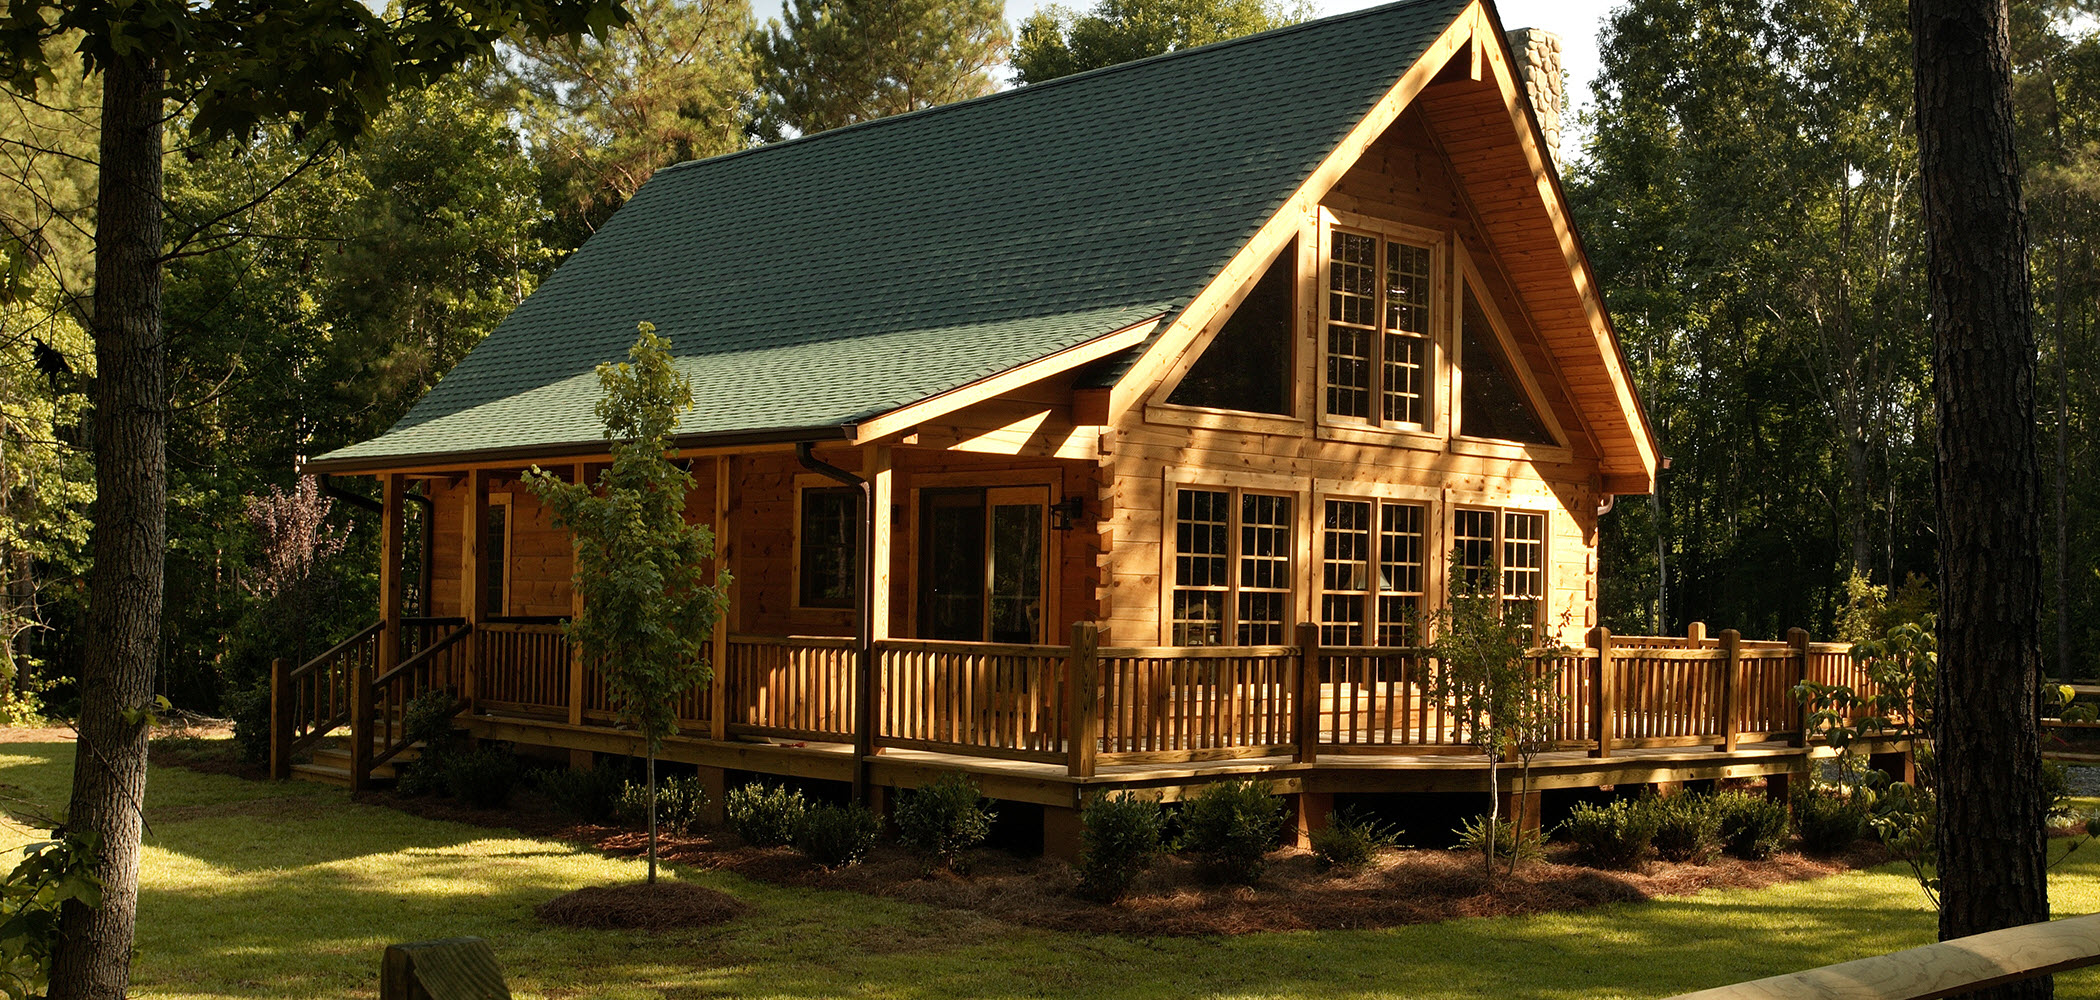 Log Houses R Nkh Zak Megaport Media